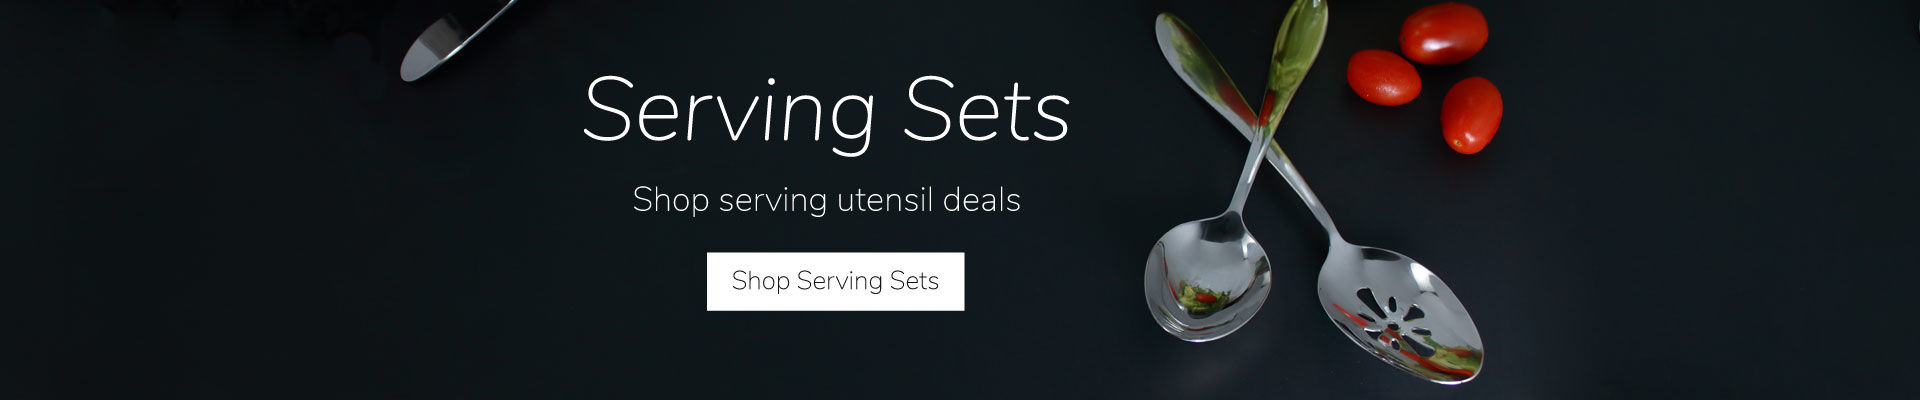 Serving Sets - Shop serving utensil deals | Elyon Tableware